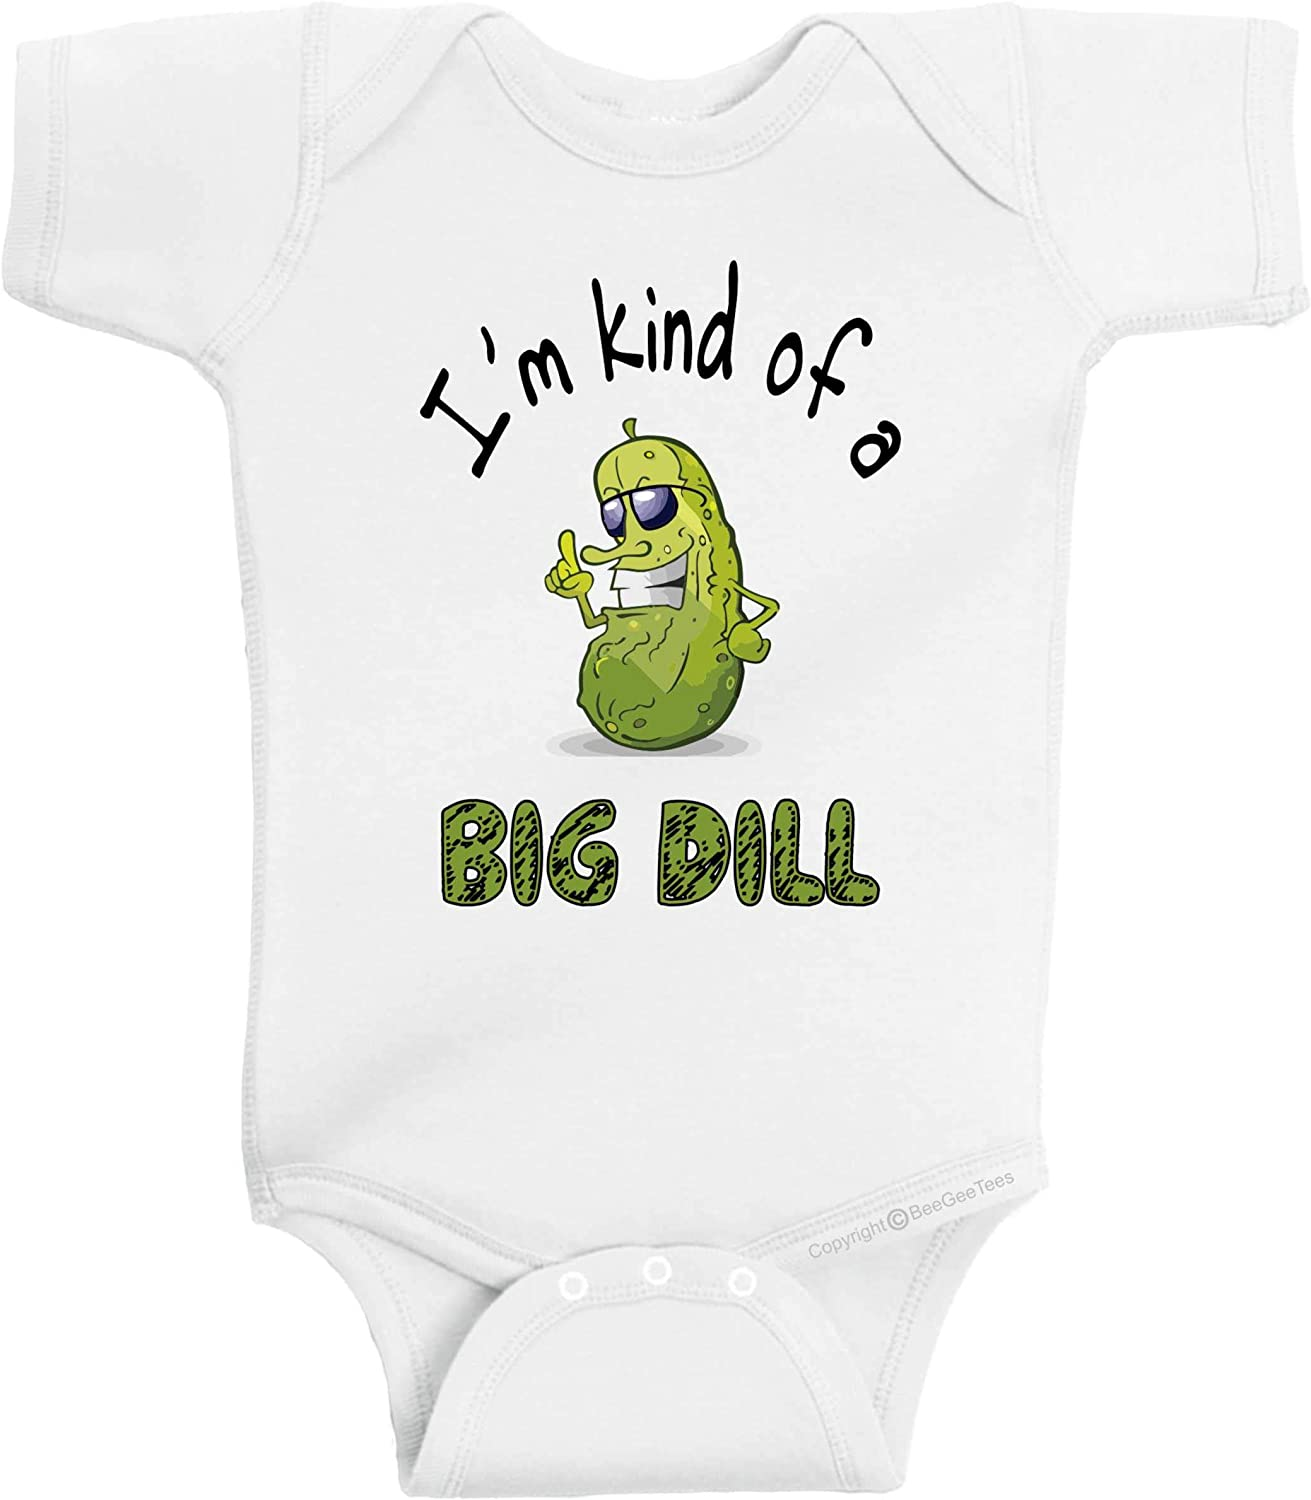 Movie Baby Gift Toddler Tees Funny Kids Tees Unisex Infant Apparel Funny Baby Shirt Baby Shirt Baby Top RON BURGUNDY Baby Shower